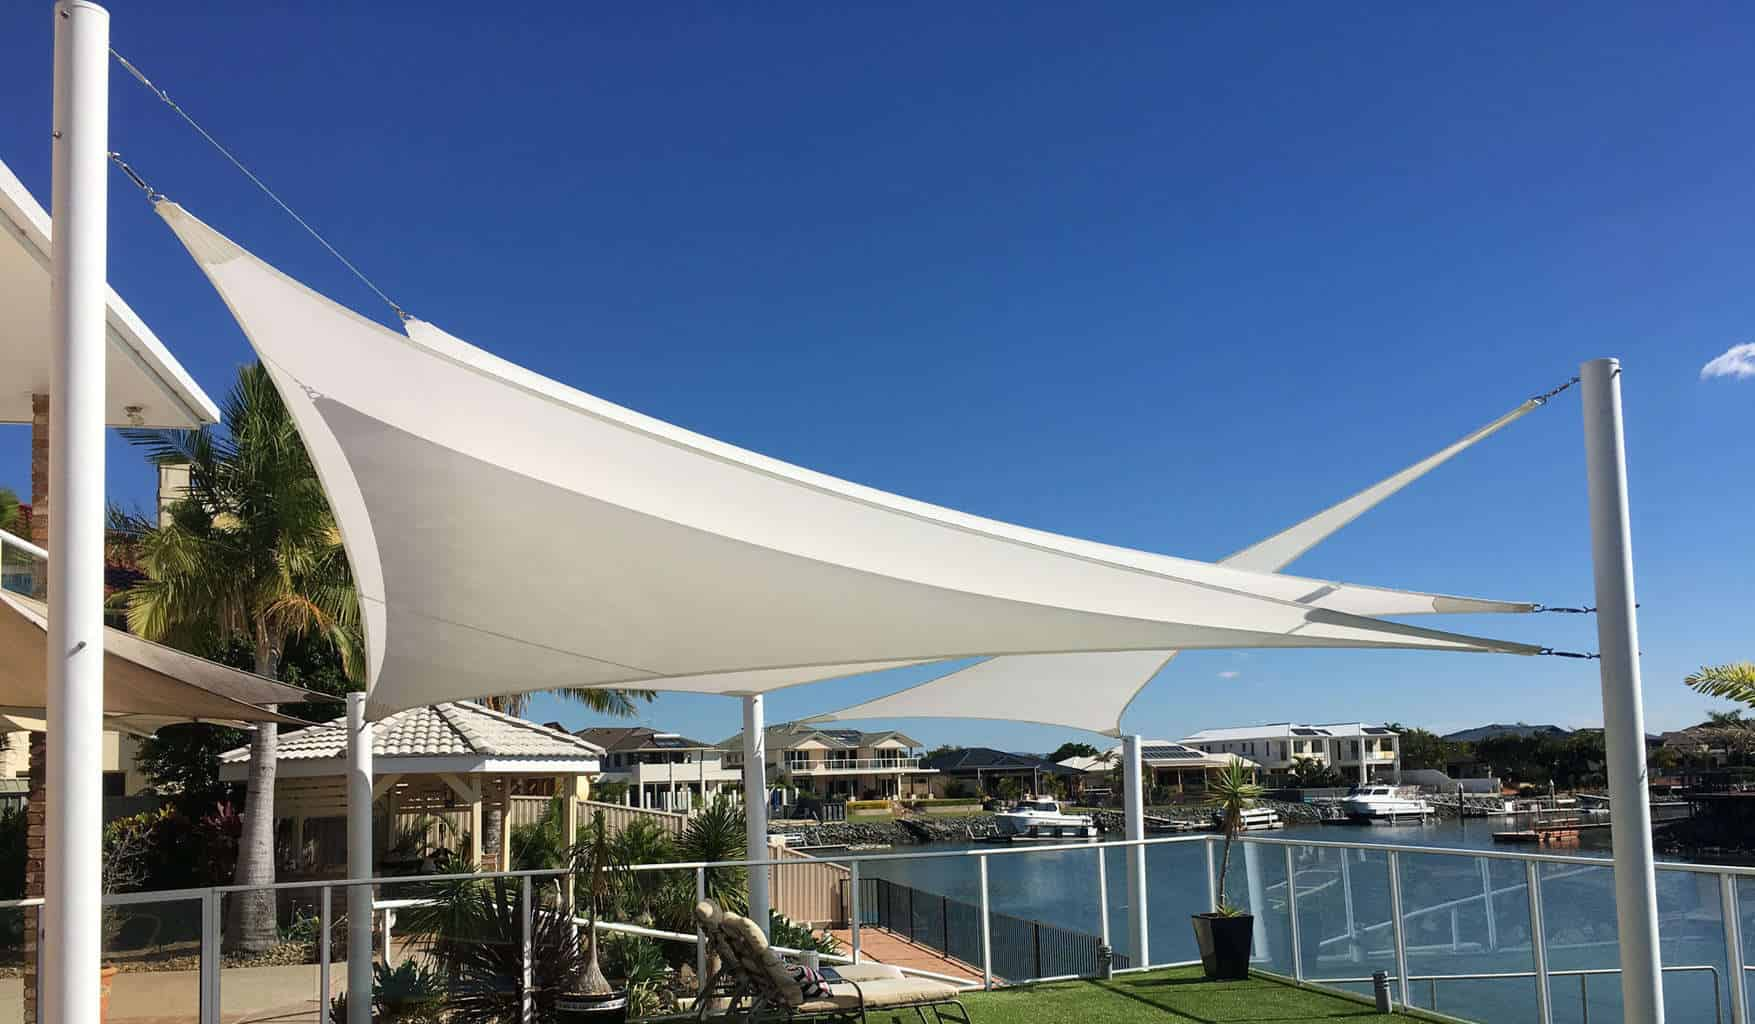 Pool Shade Sail Brisbane Swimming Pool Shade Superior